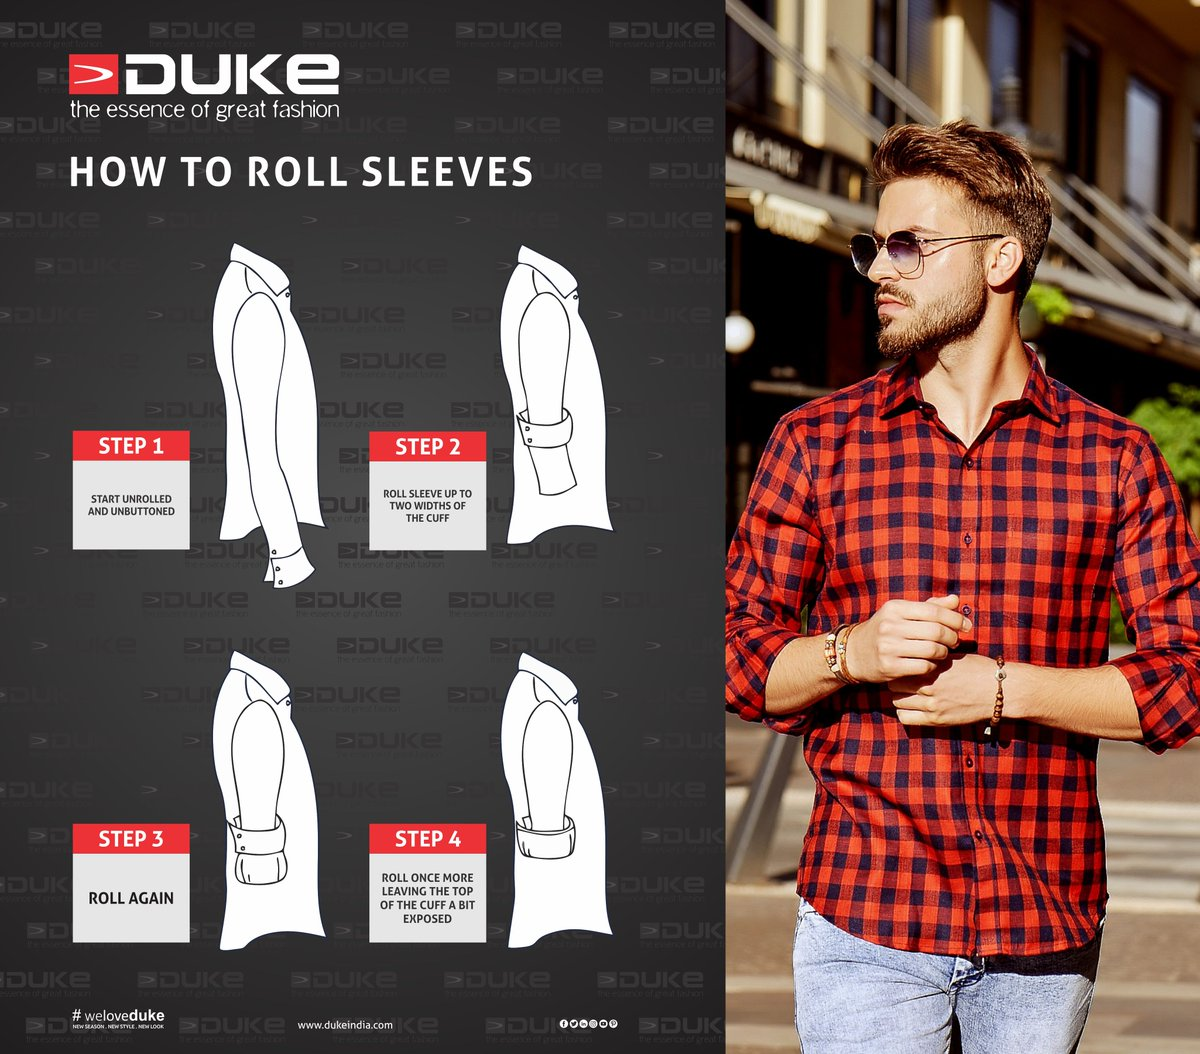 4 different ways to roll shirt sleeves.  #Duke #Shirts #roll #Fashion #style #information #knowledge #instafashion #Pinterest #info #Instagood #DukeFashion #weloveduke #shirt #trendsetter #look&style